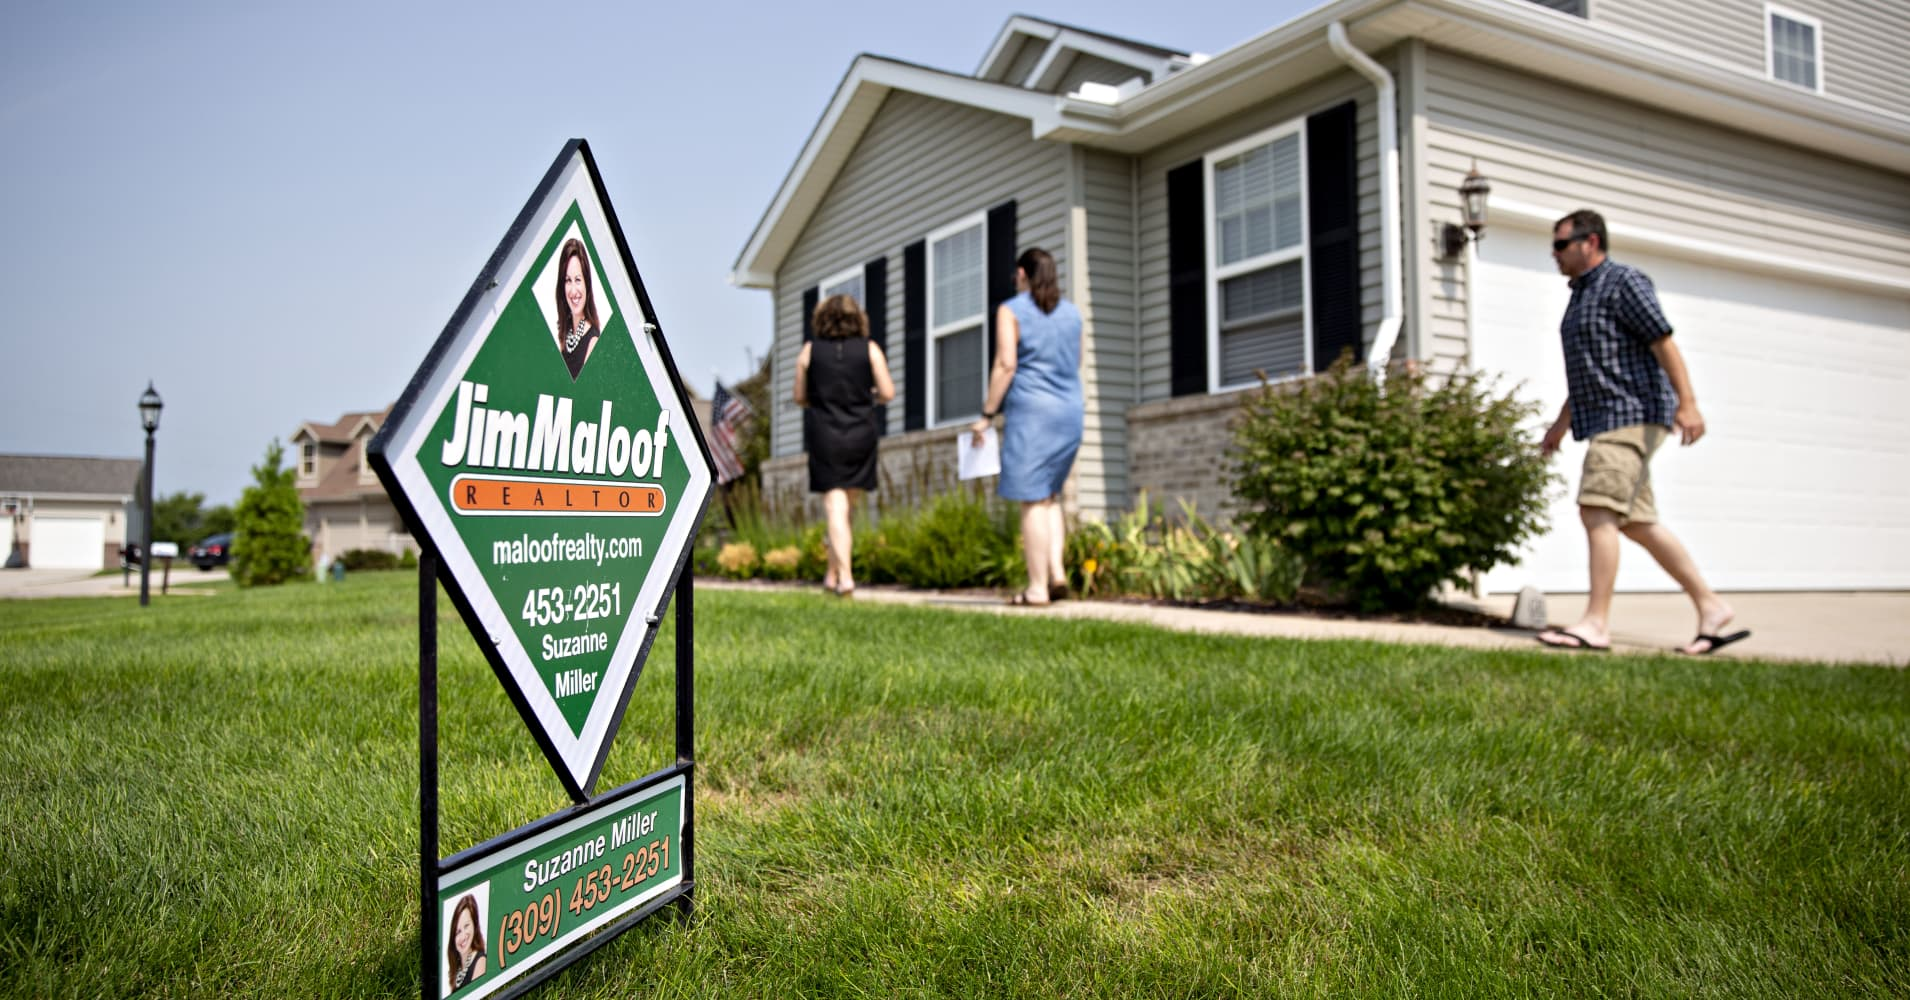 Weekly mortgage applications fall 1.7% as interest rates move above 5%